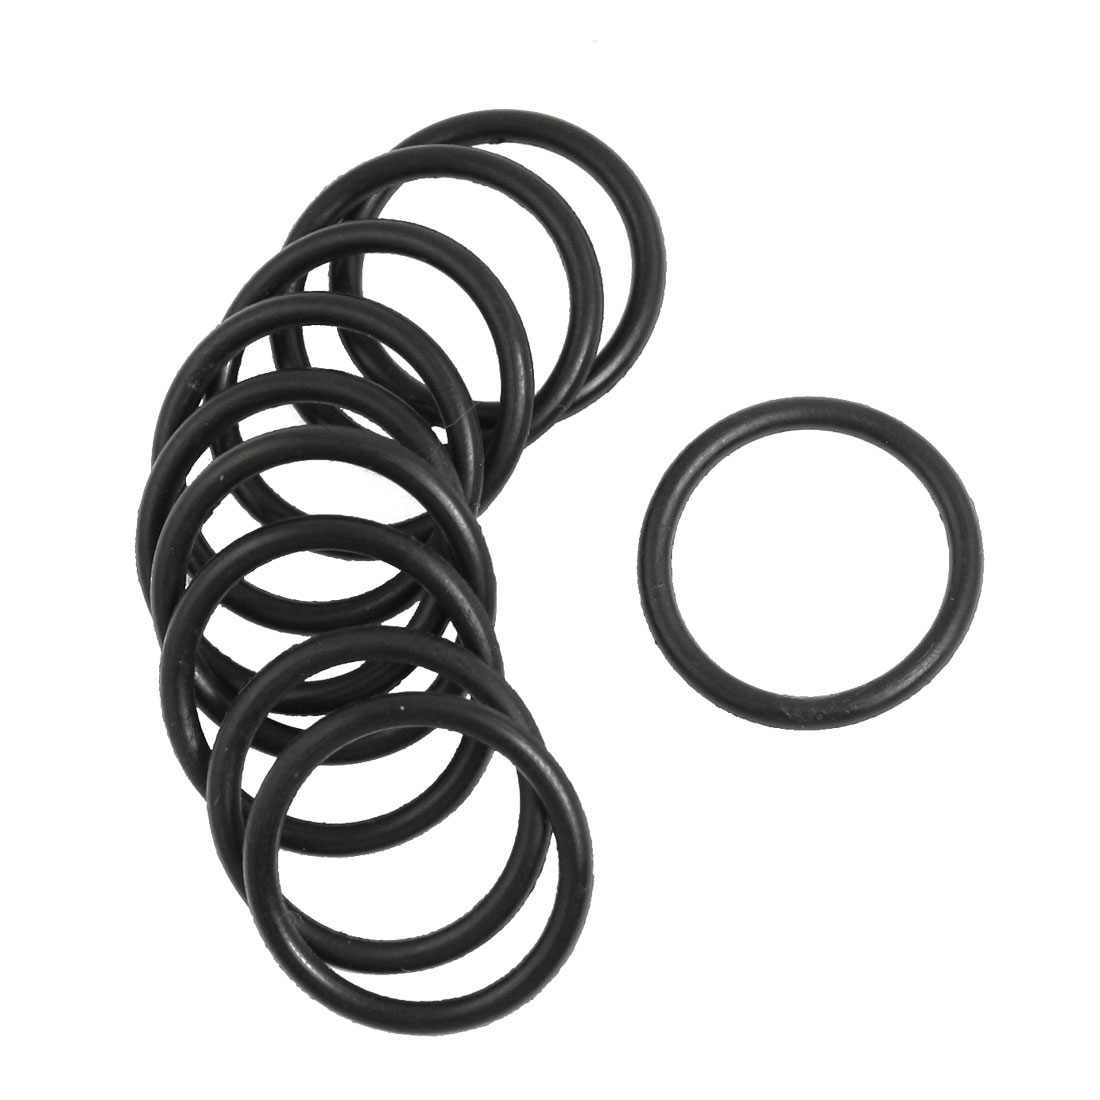 10 Pcs 24mm x 2.5mm Mechanical Rubber O Ring Oil Seal Gaskets